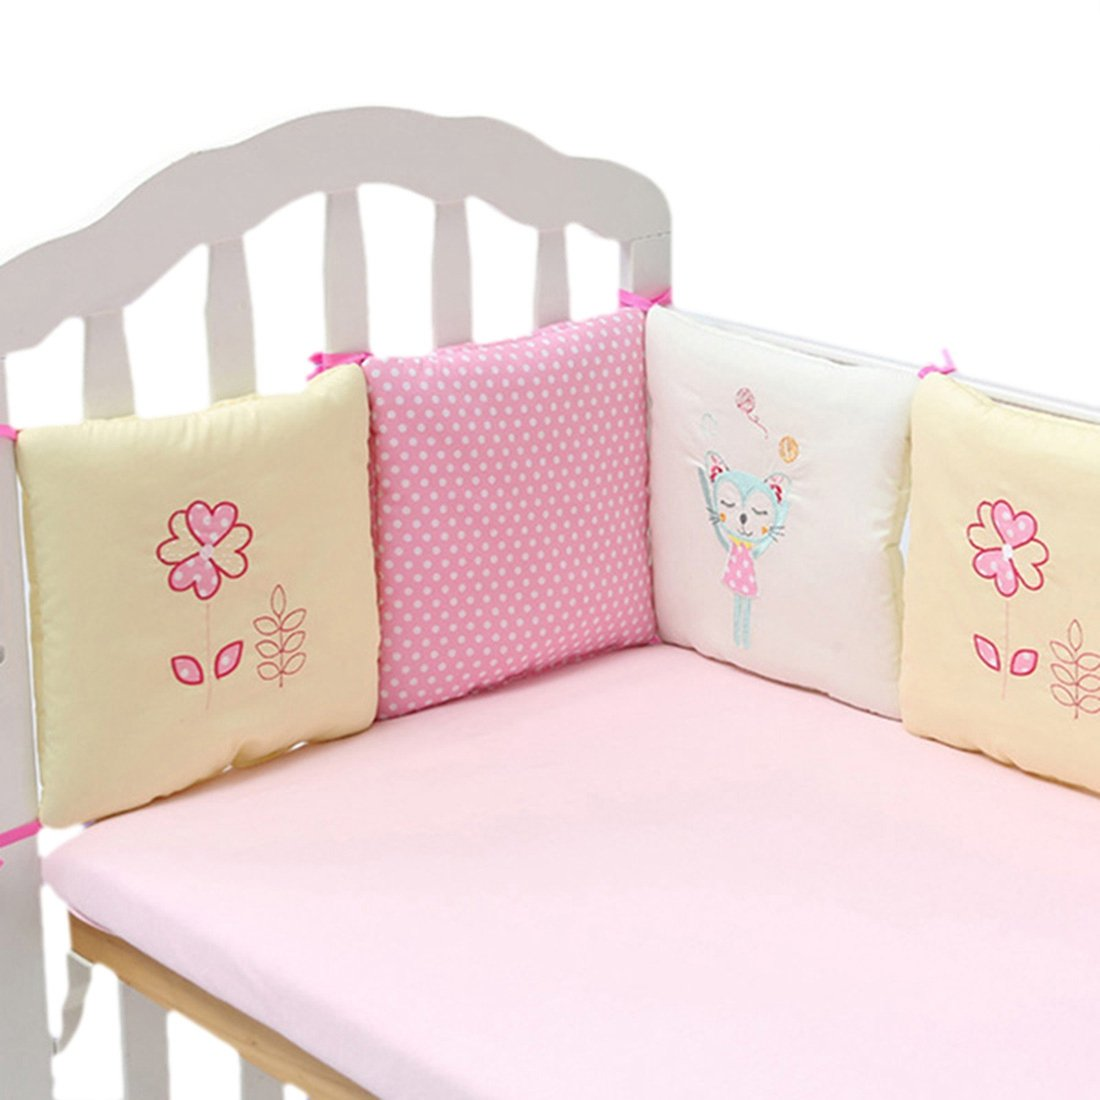 Jiyaru 6pcs Baby Bedding Bumper Cotton Cot Toddler Crib Nursery Bedding 30x30cm Pink